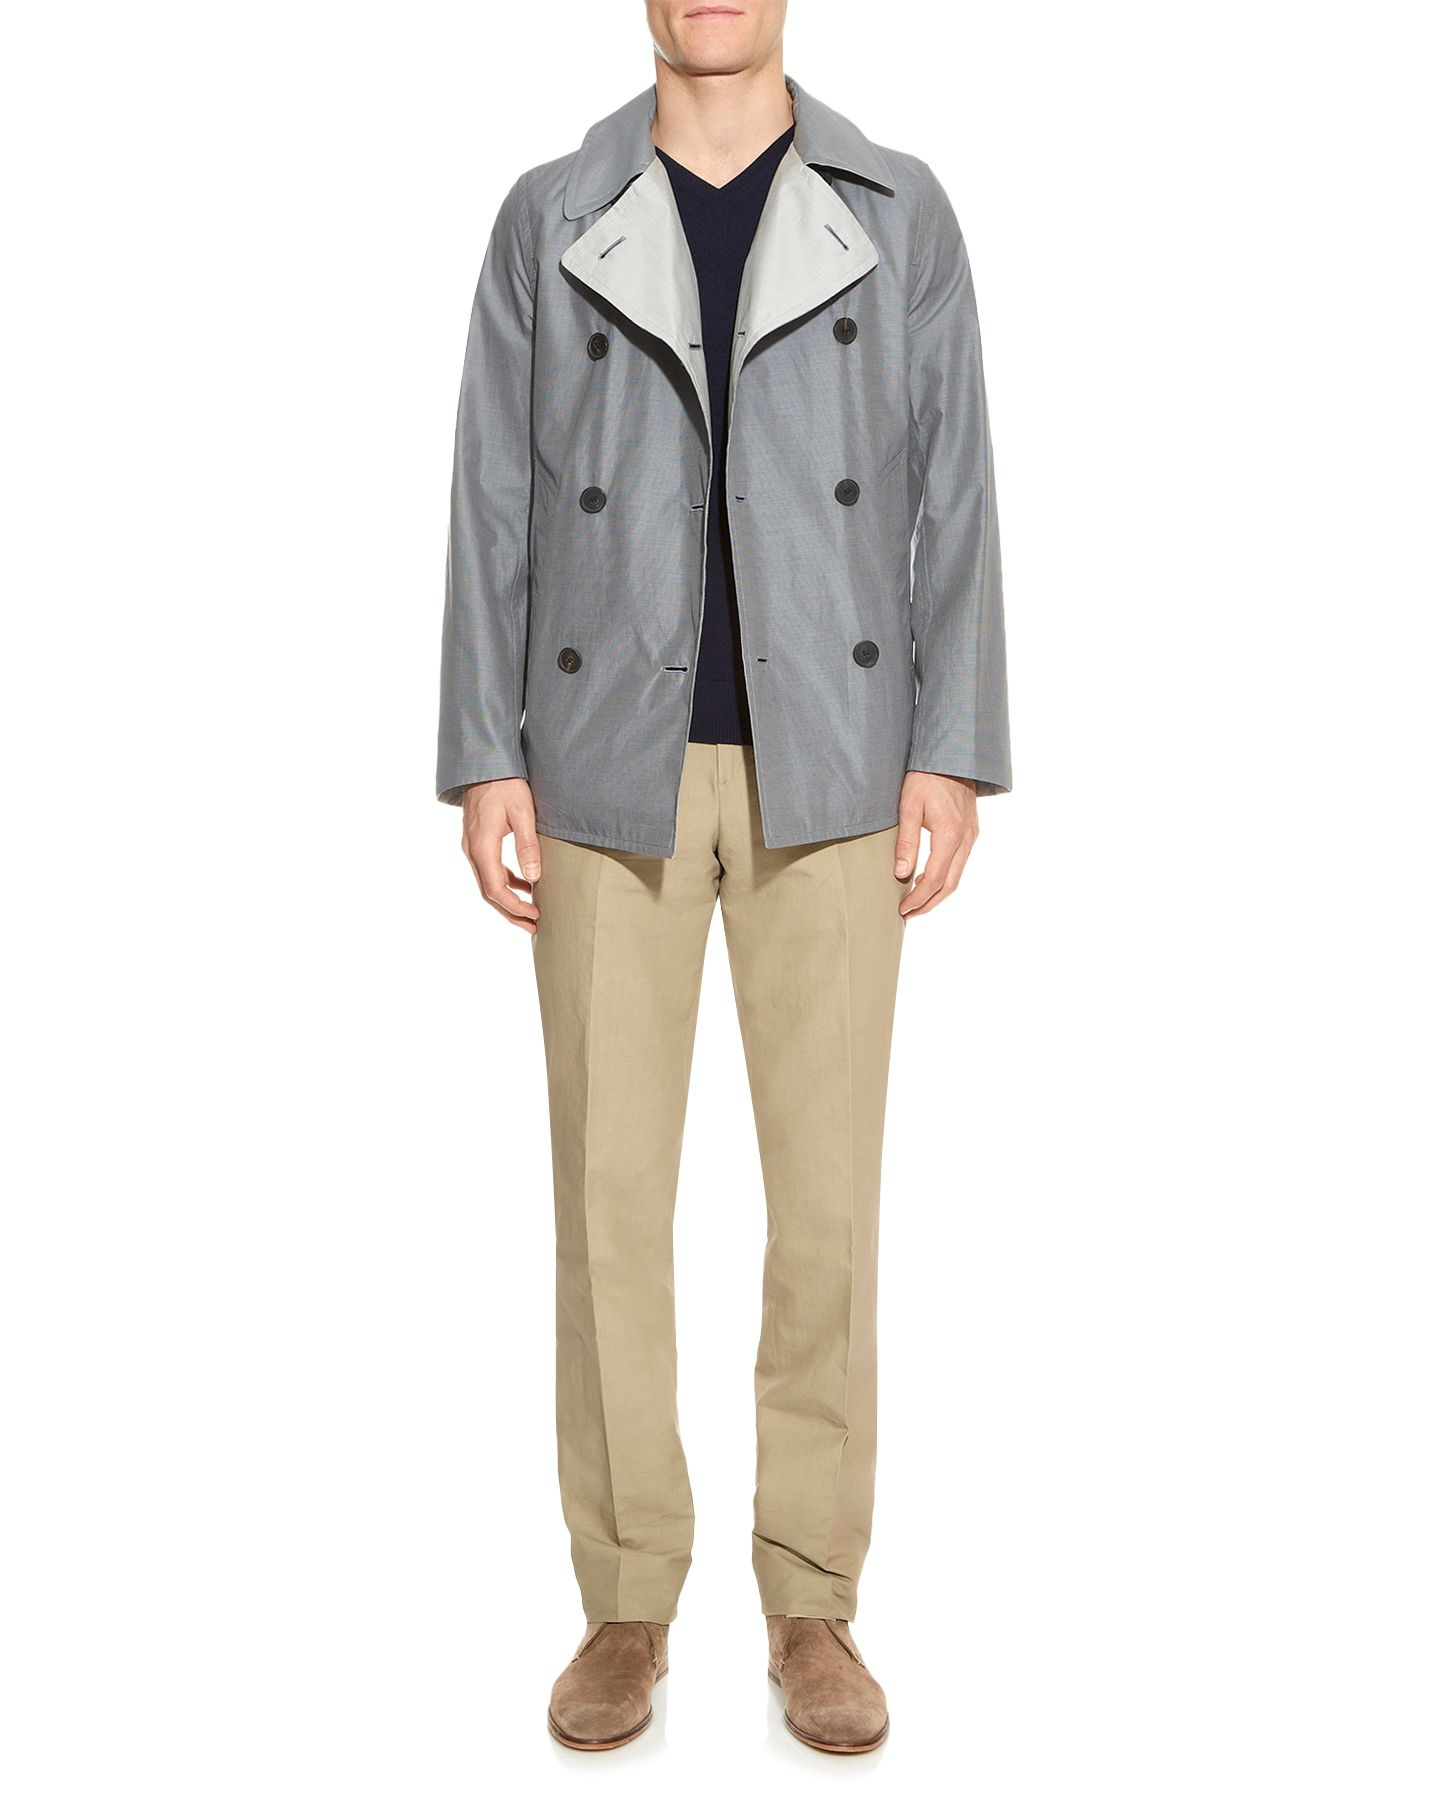 Horowitz formal reversible button jacket